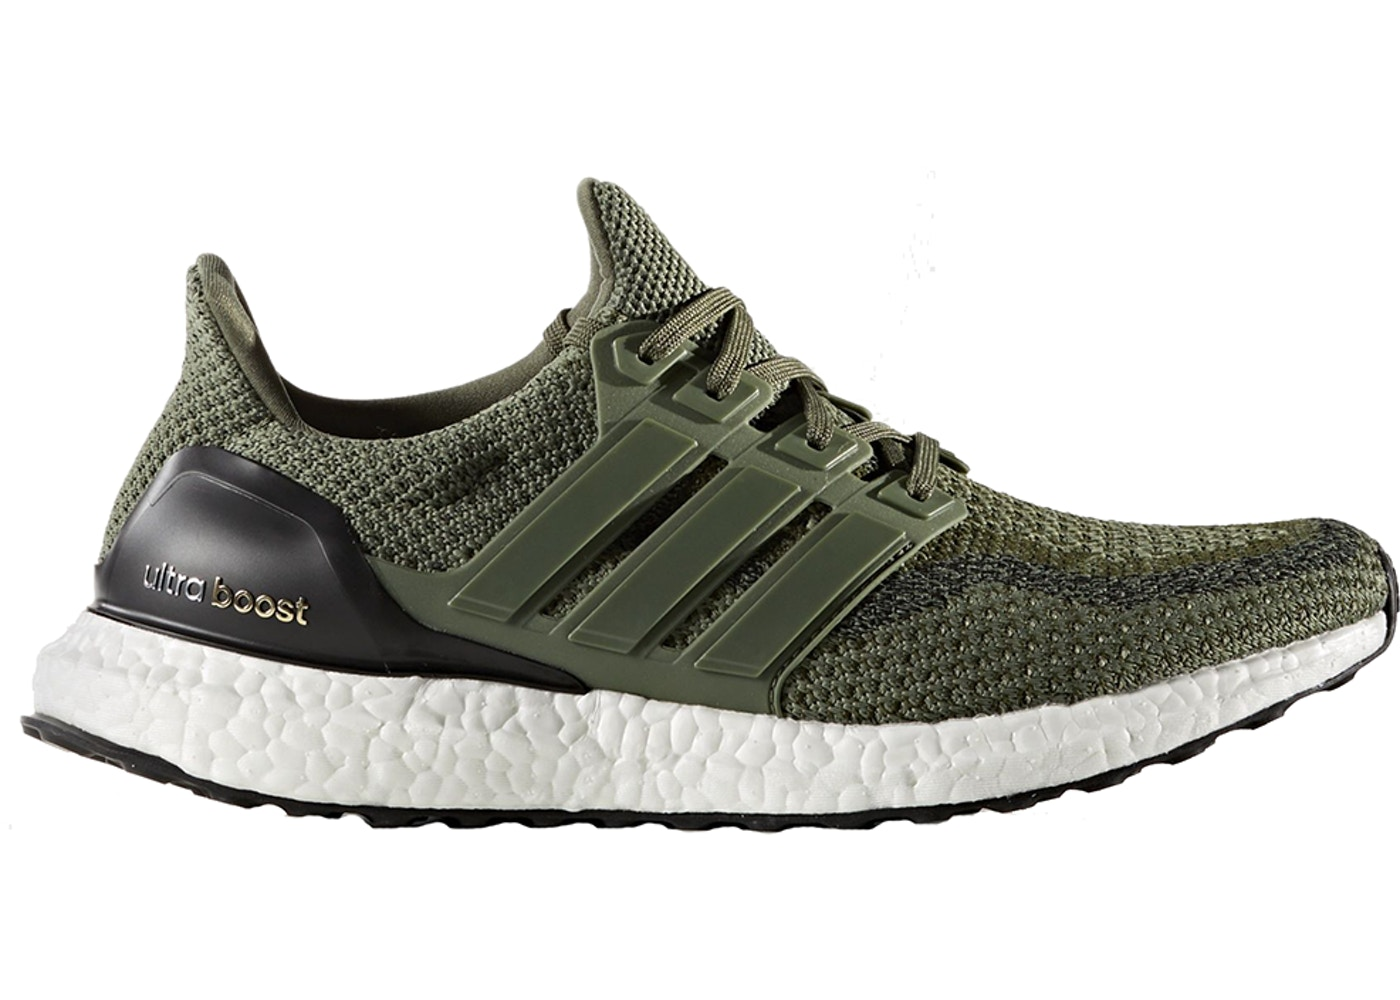 4090702a935 adidas Ultra Boost 2.0 Merino Wool Base Green Olive - BB6055